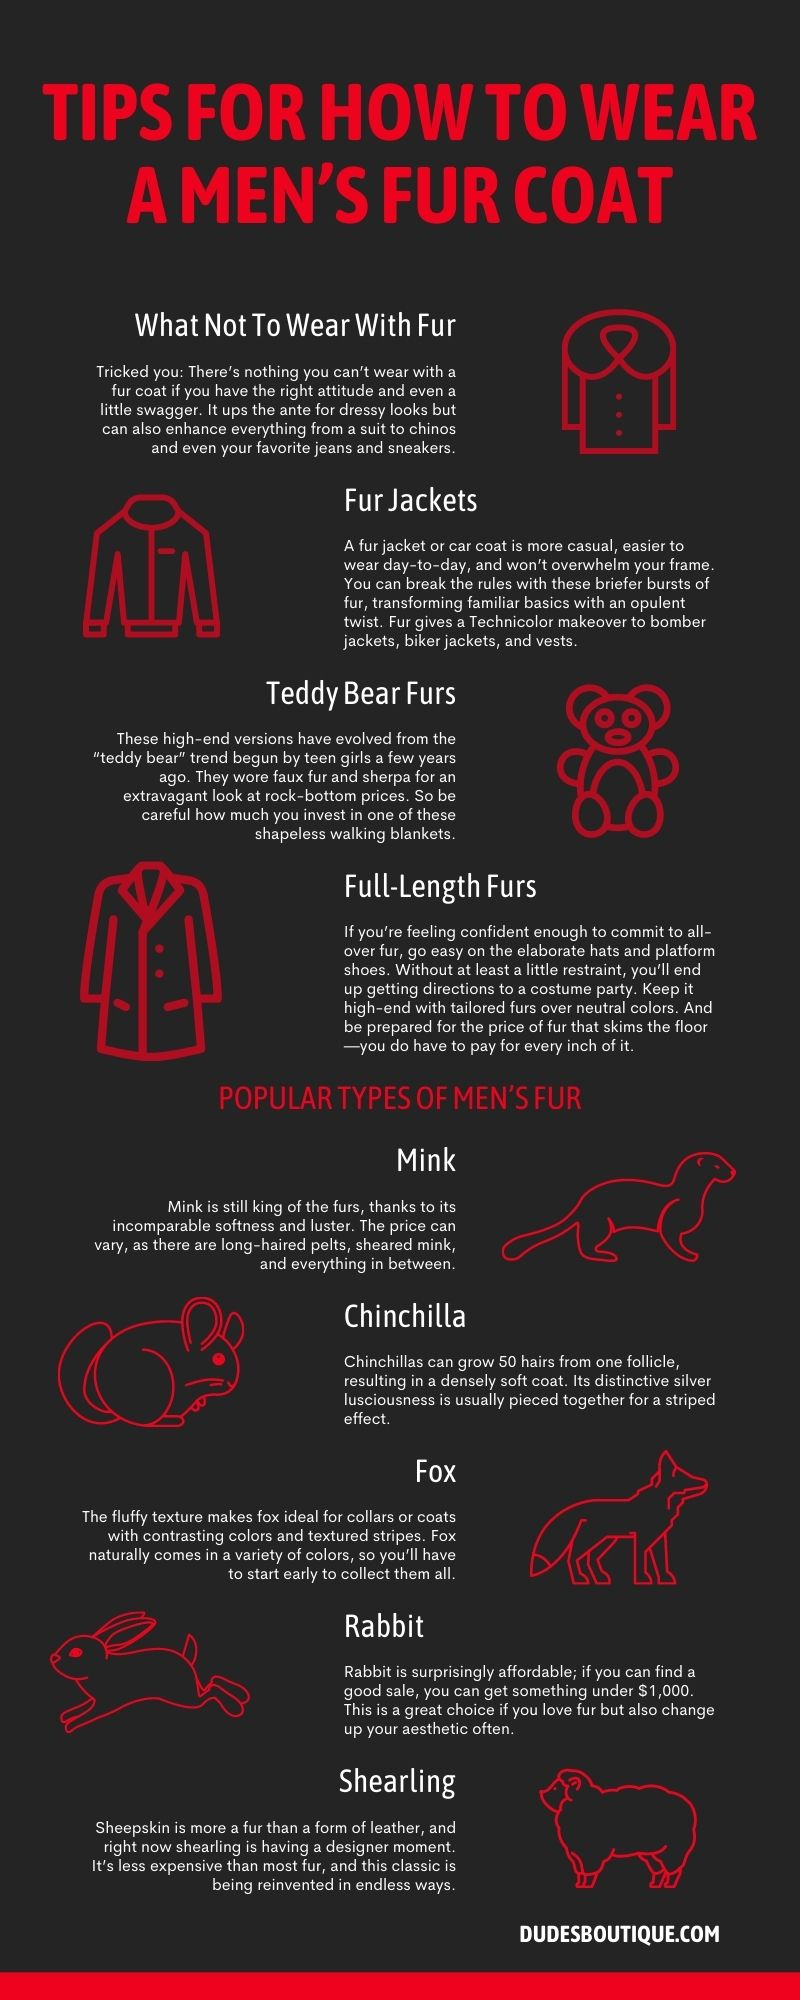 Tips for How To Wear a Men's Fur Coat